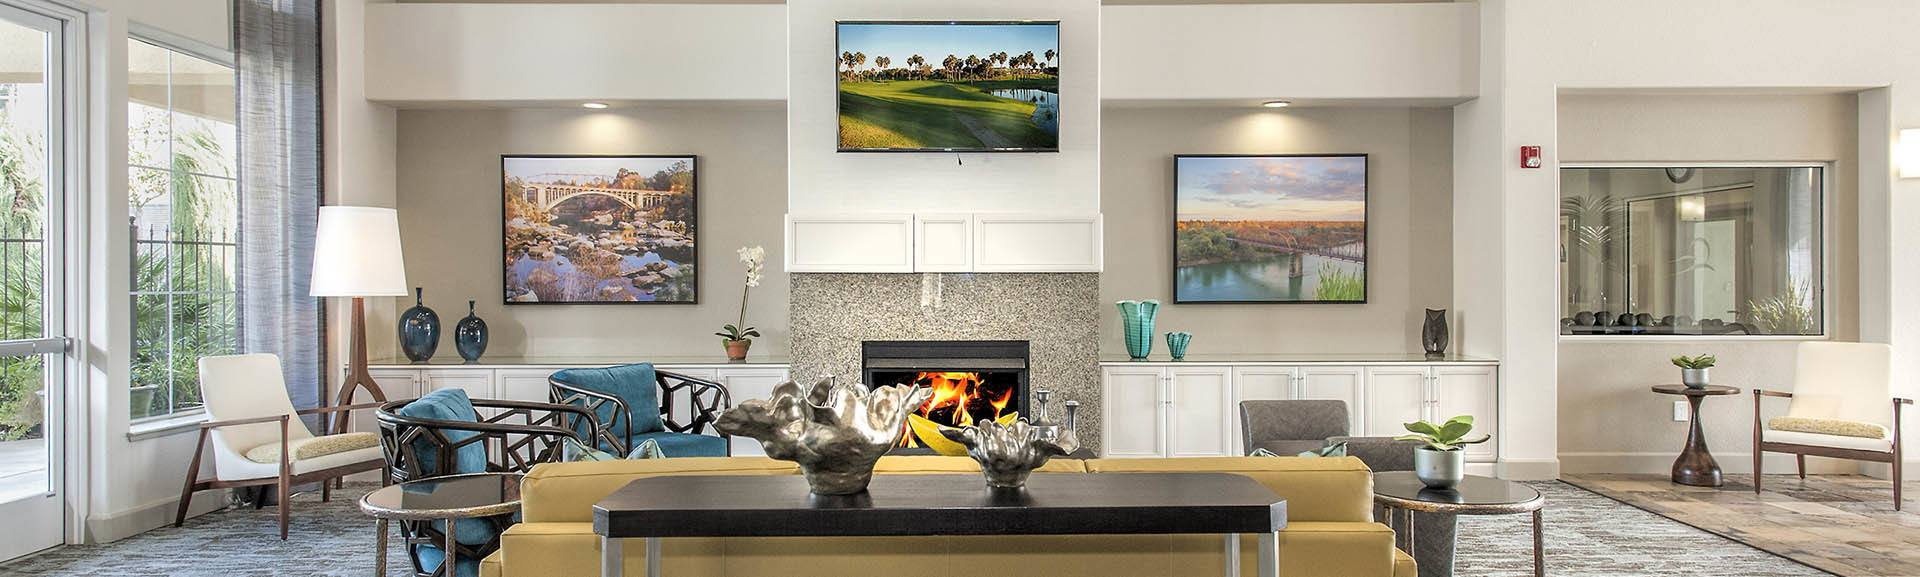 Amenities at Iron Point at Prairie Oaks in Folsom, California